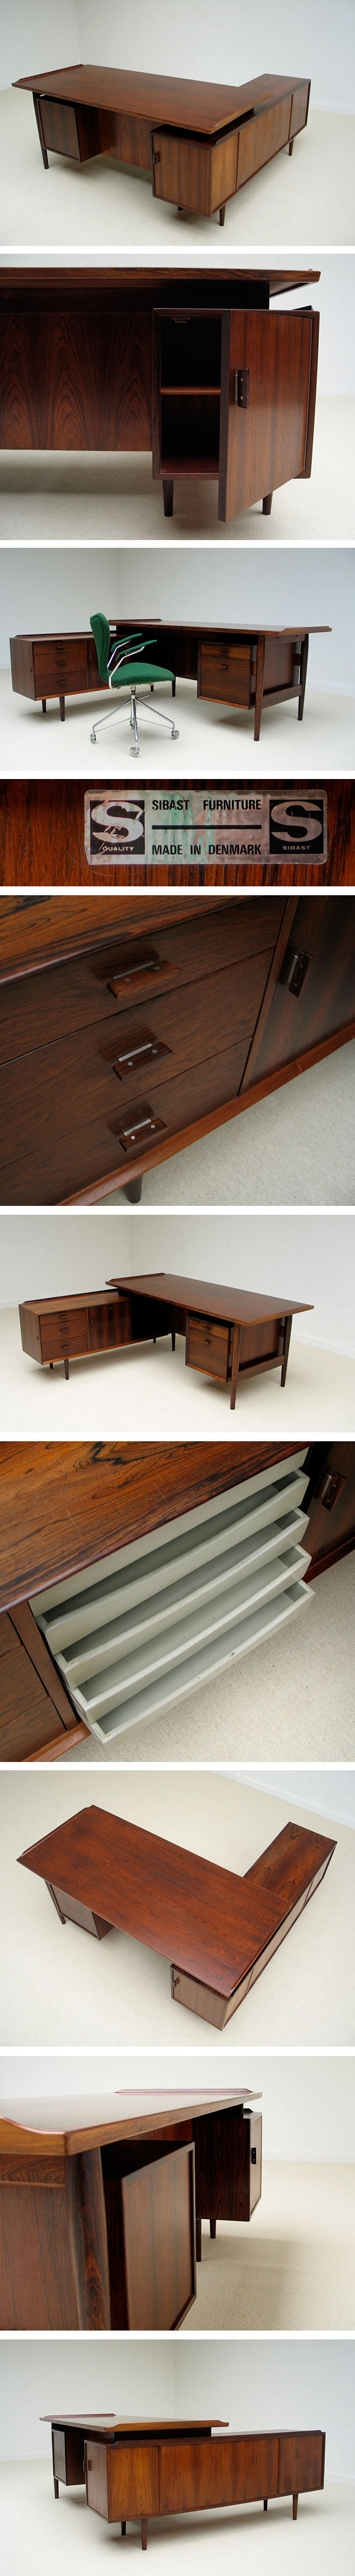 Arne Vodder rosewood office desk Sibast Furniture 1955 Large